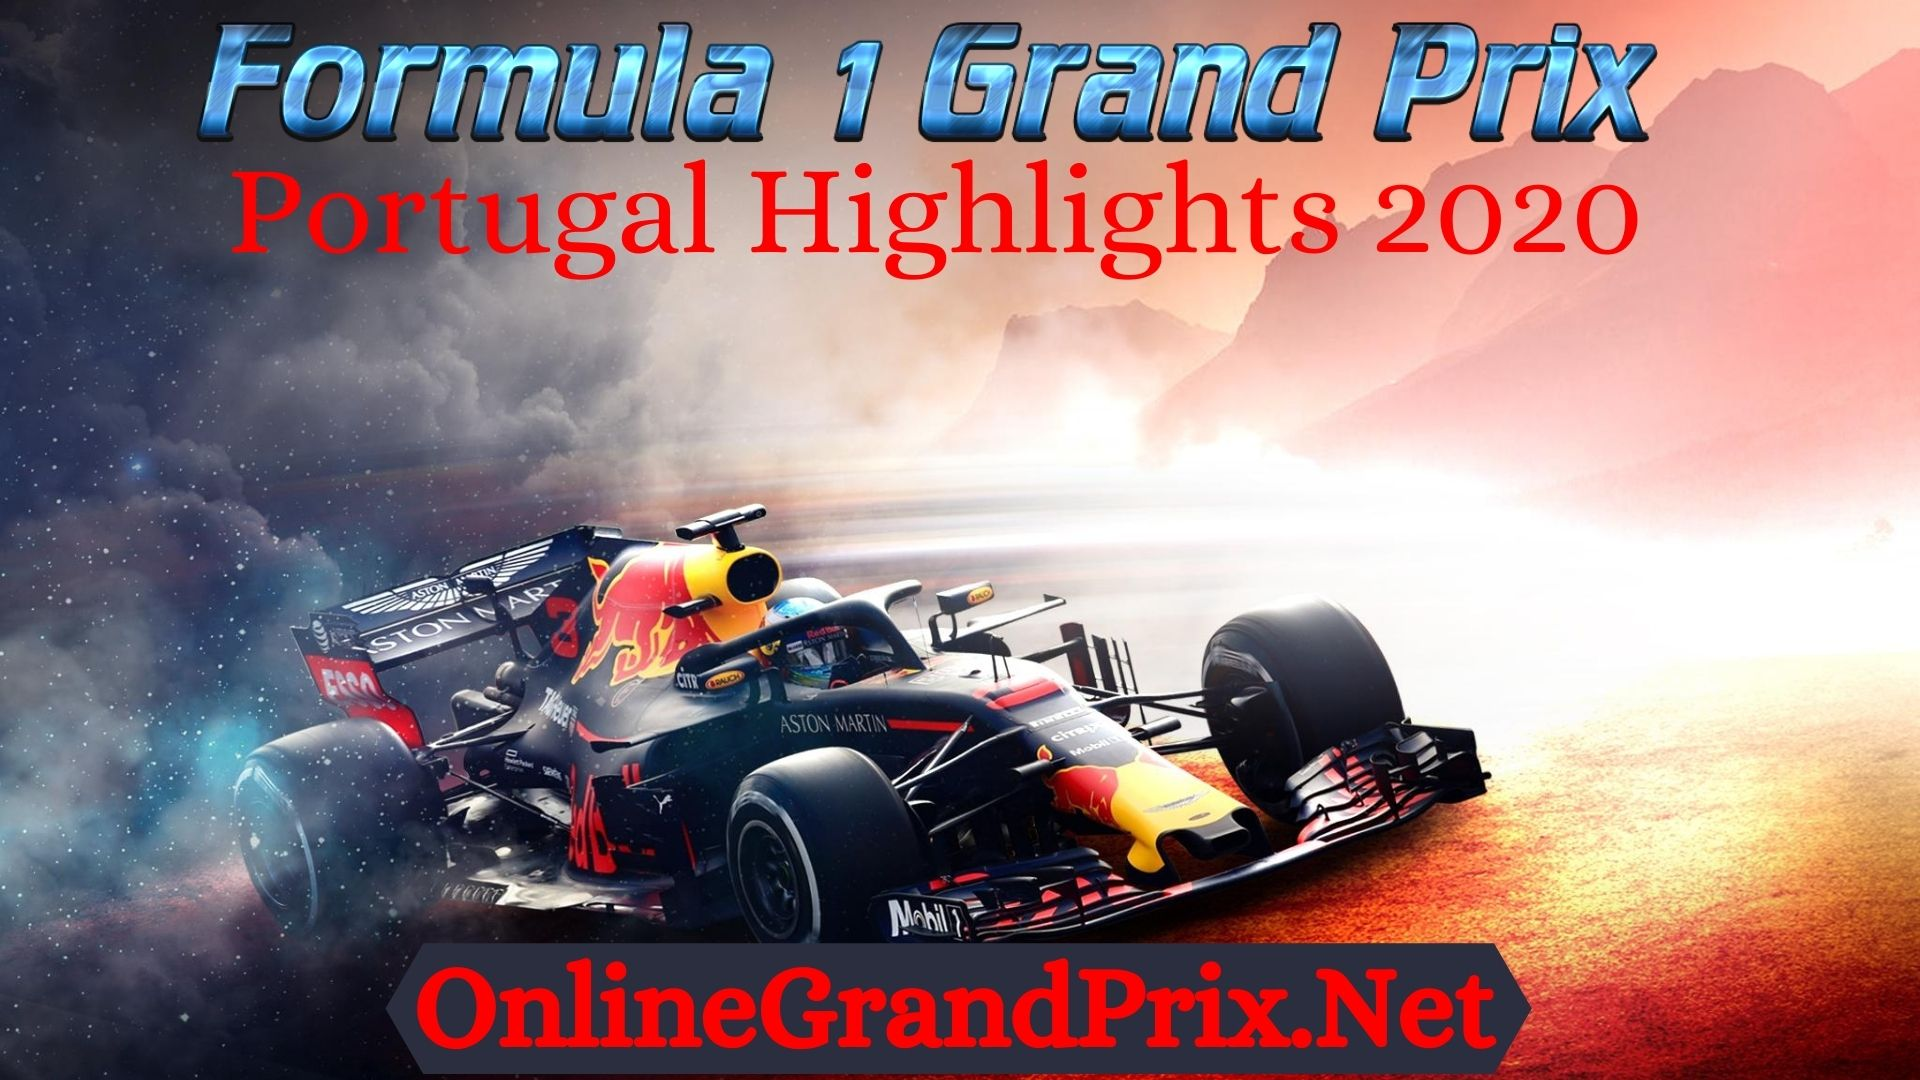 Portugal GP F1 Highlights 2020